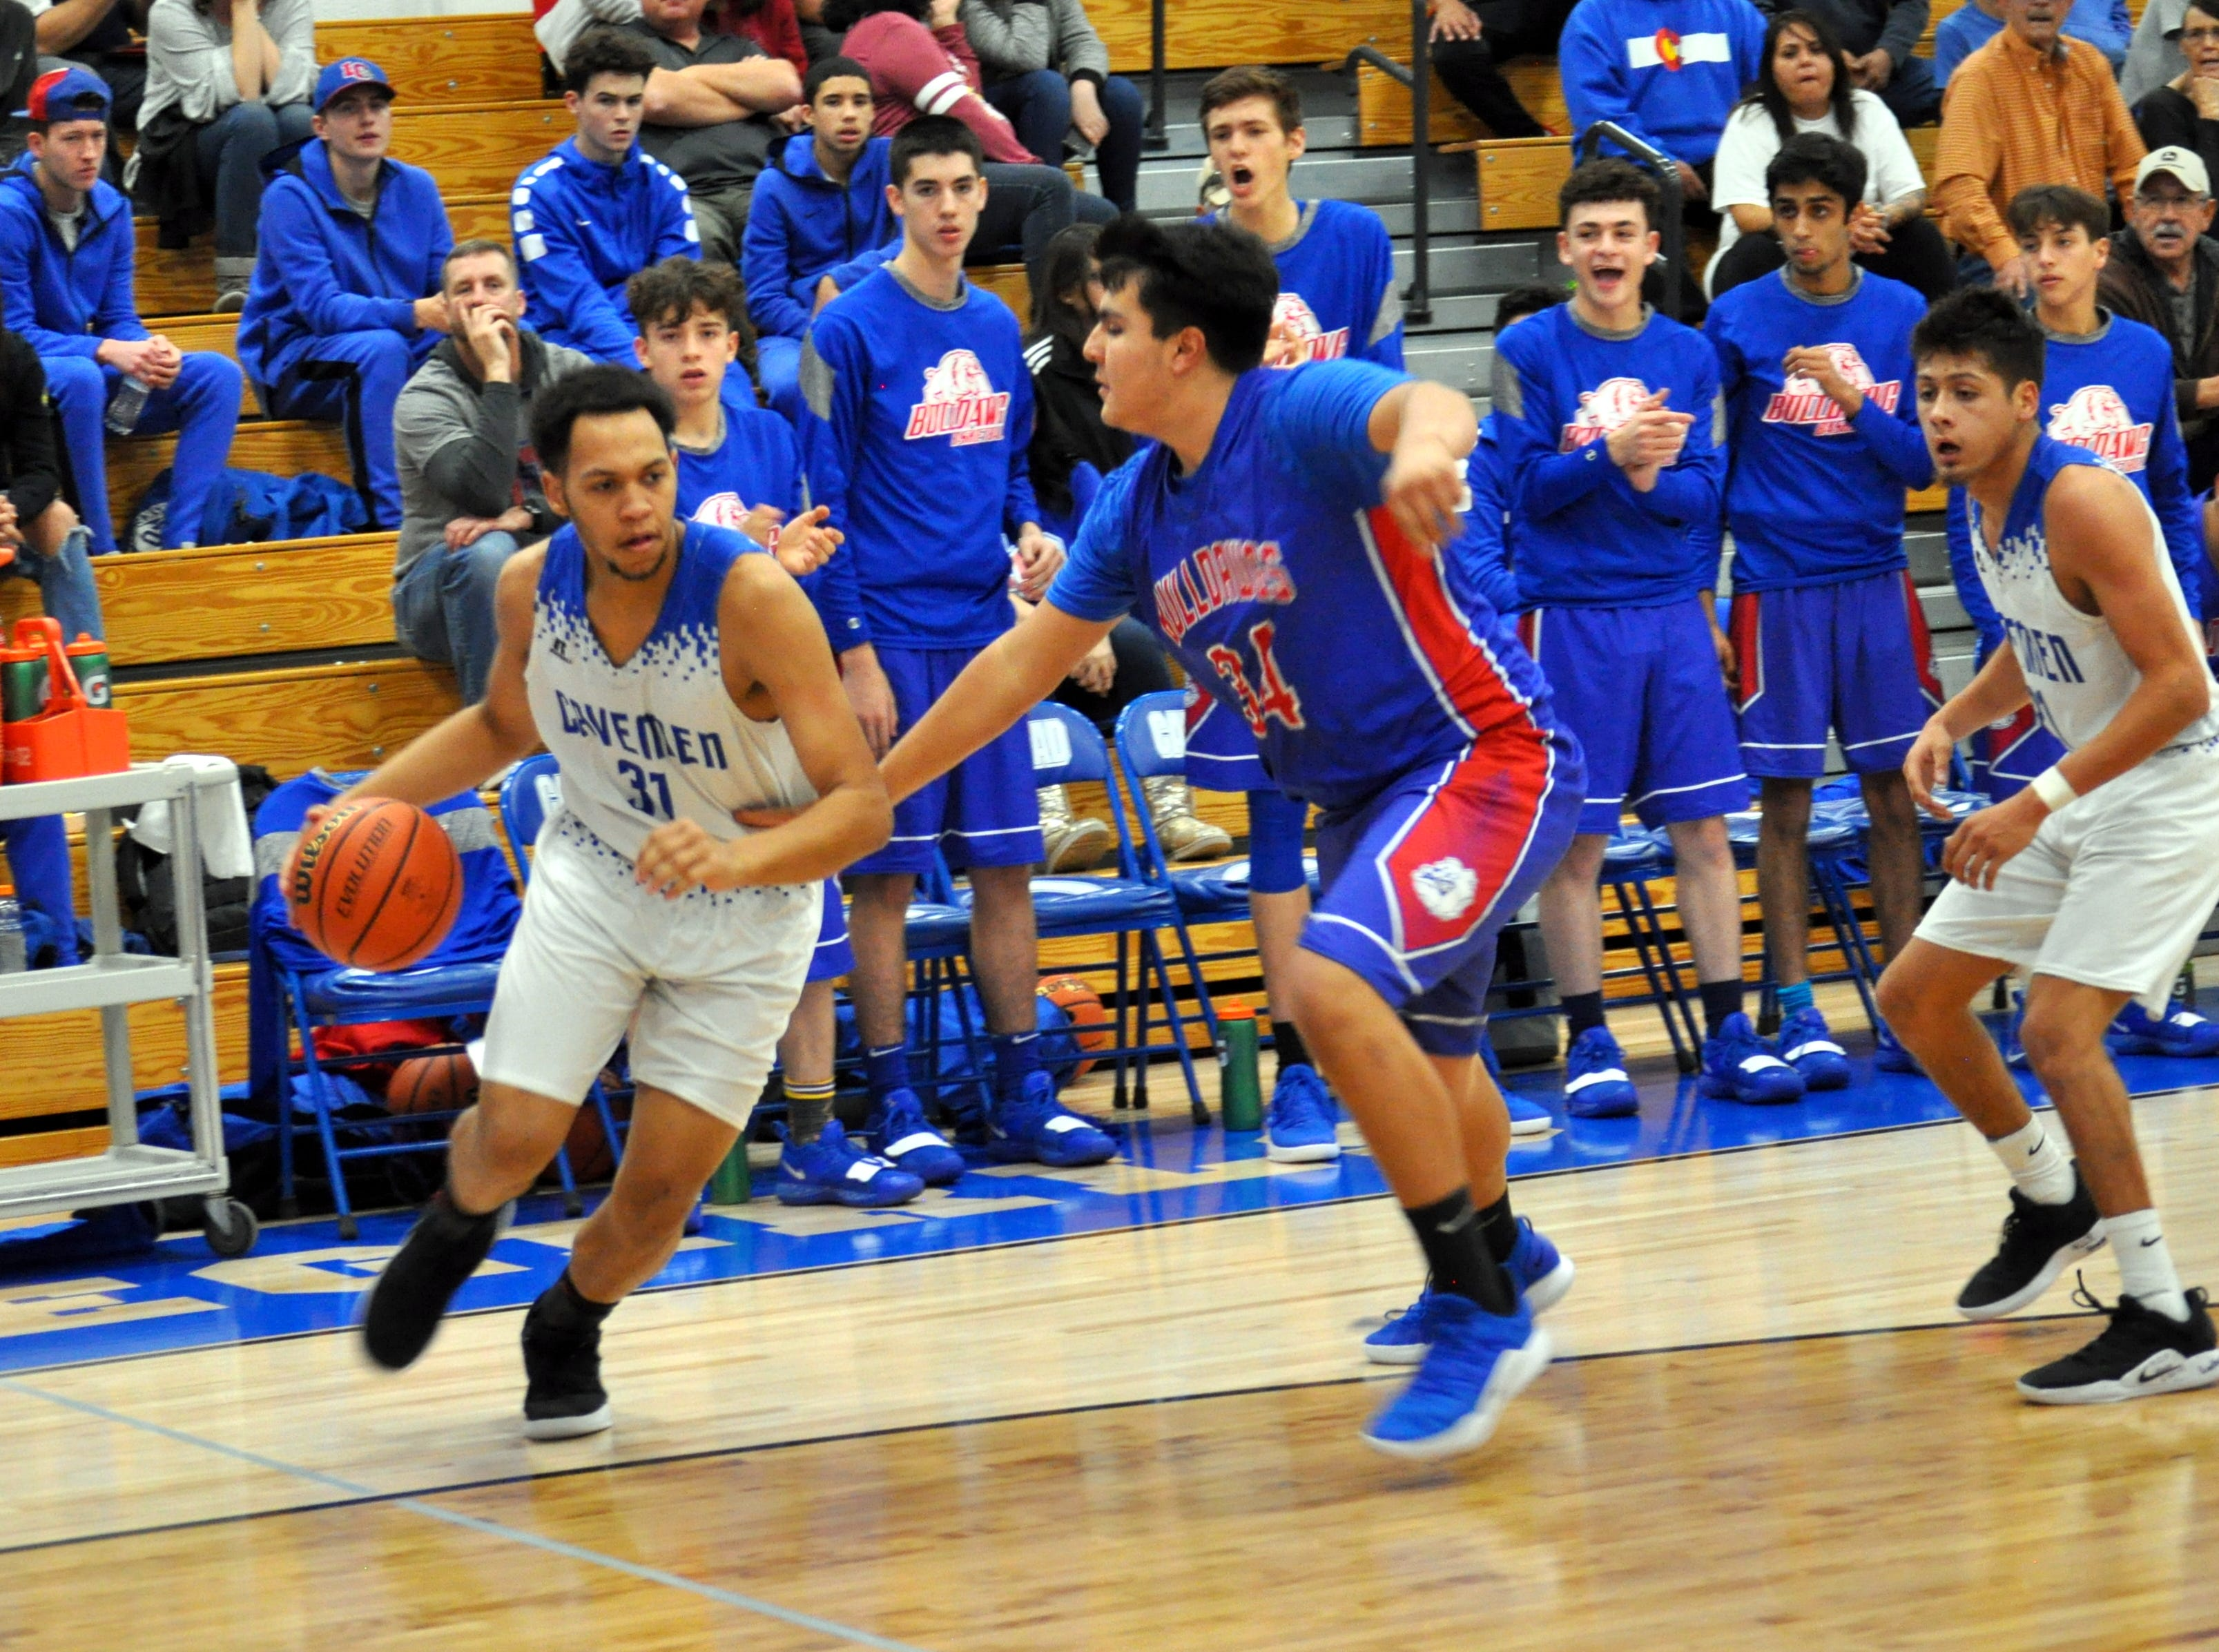 Carlsbad's Phillip Lee drives against Las Cruces' Josiah Montoya during Friday's game.